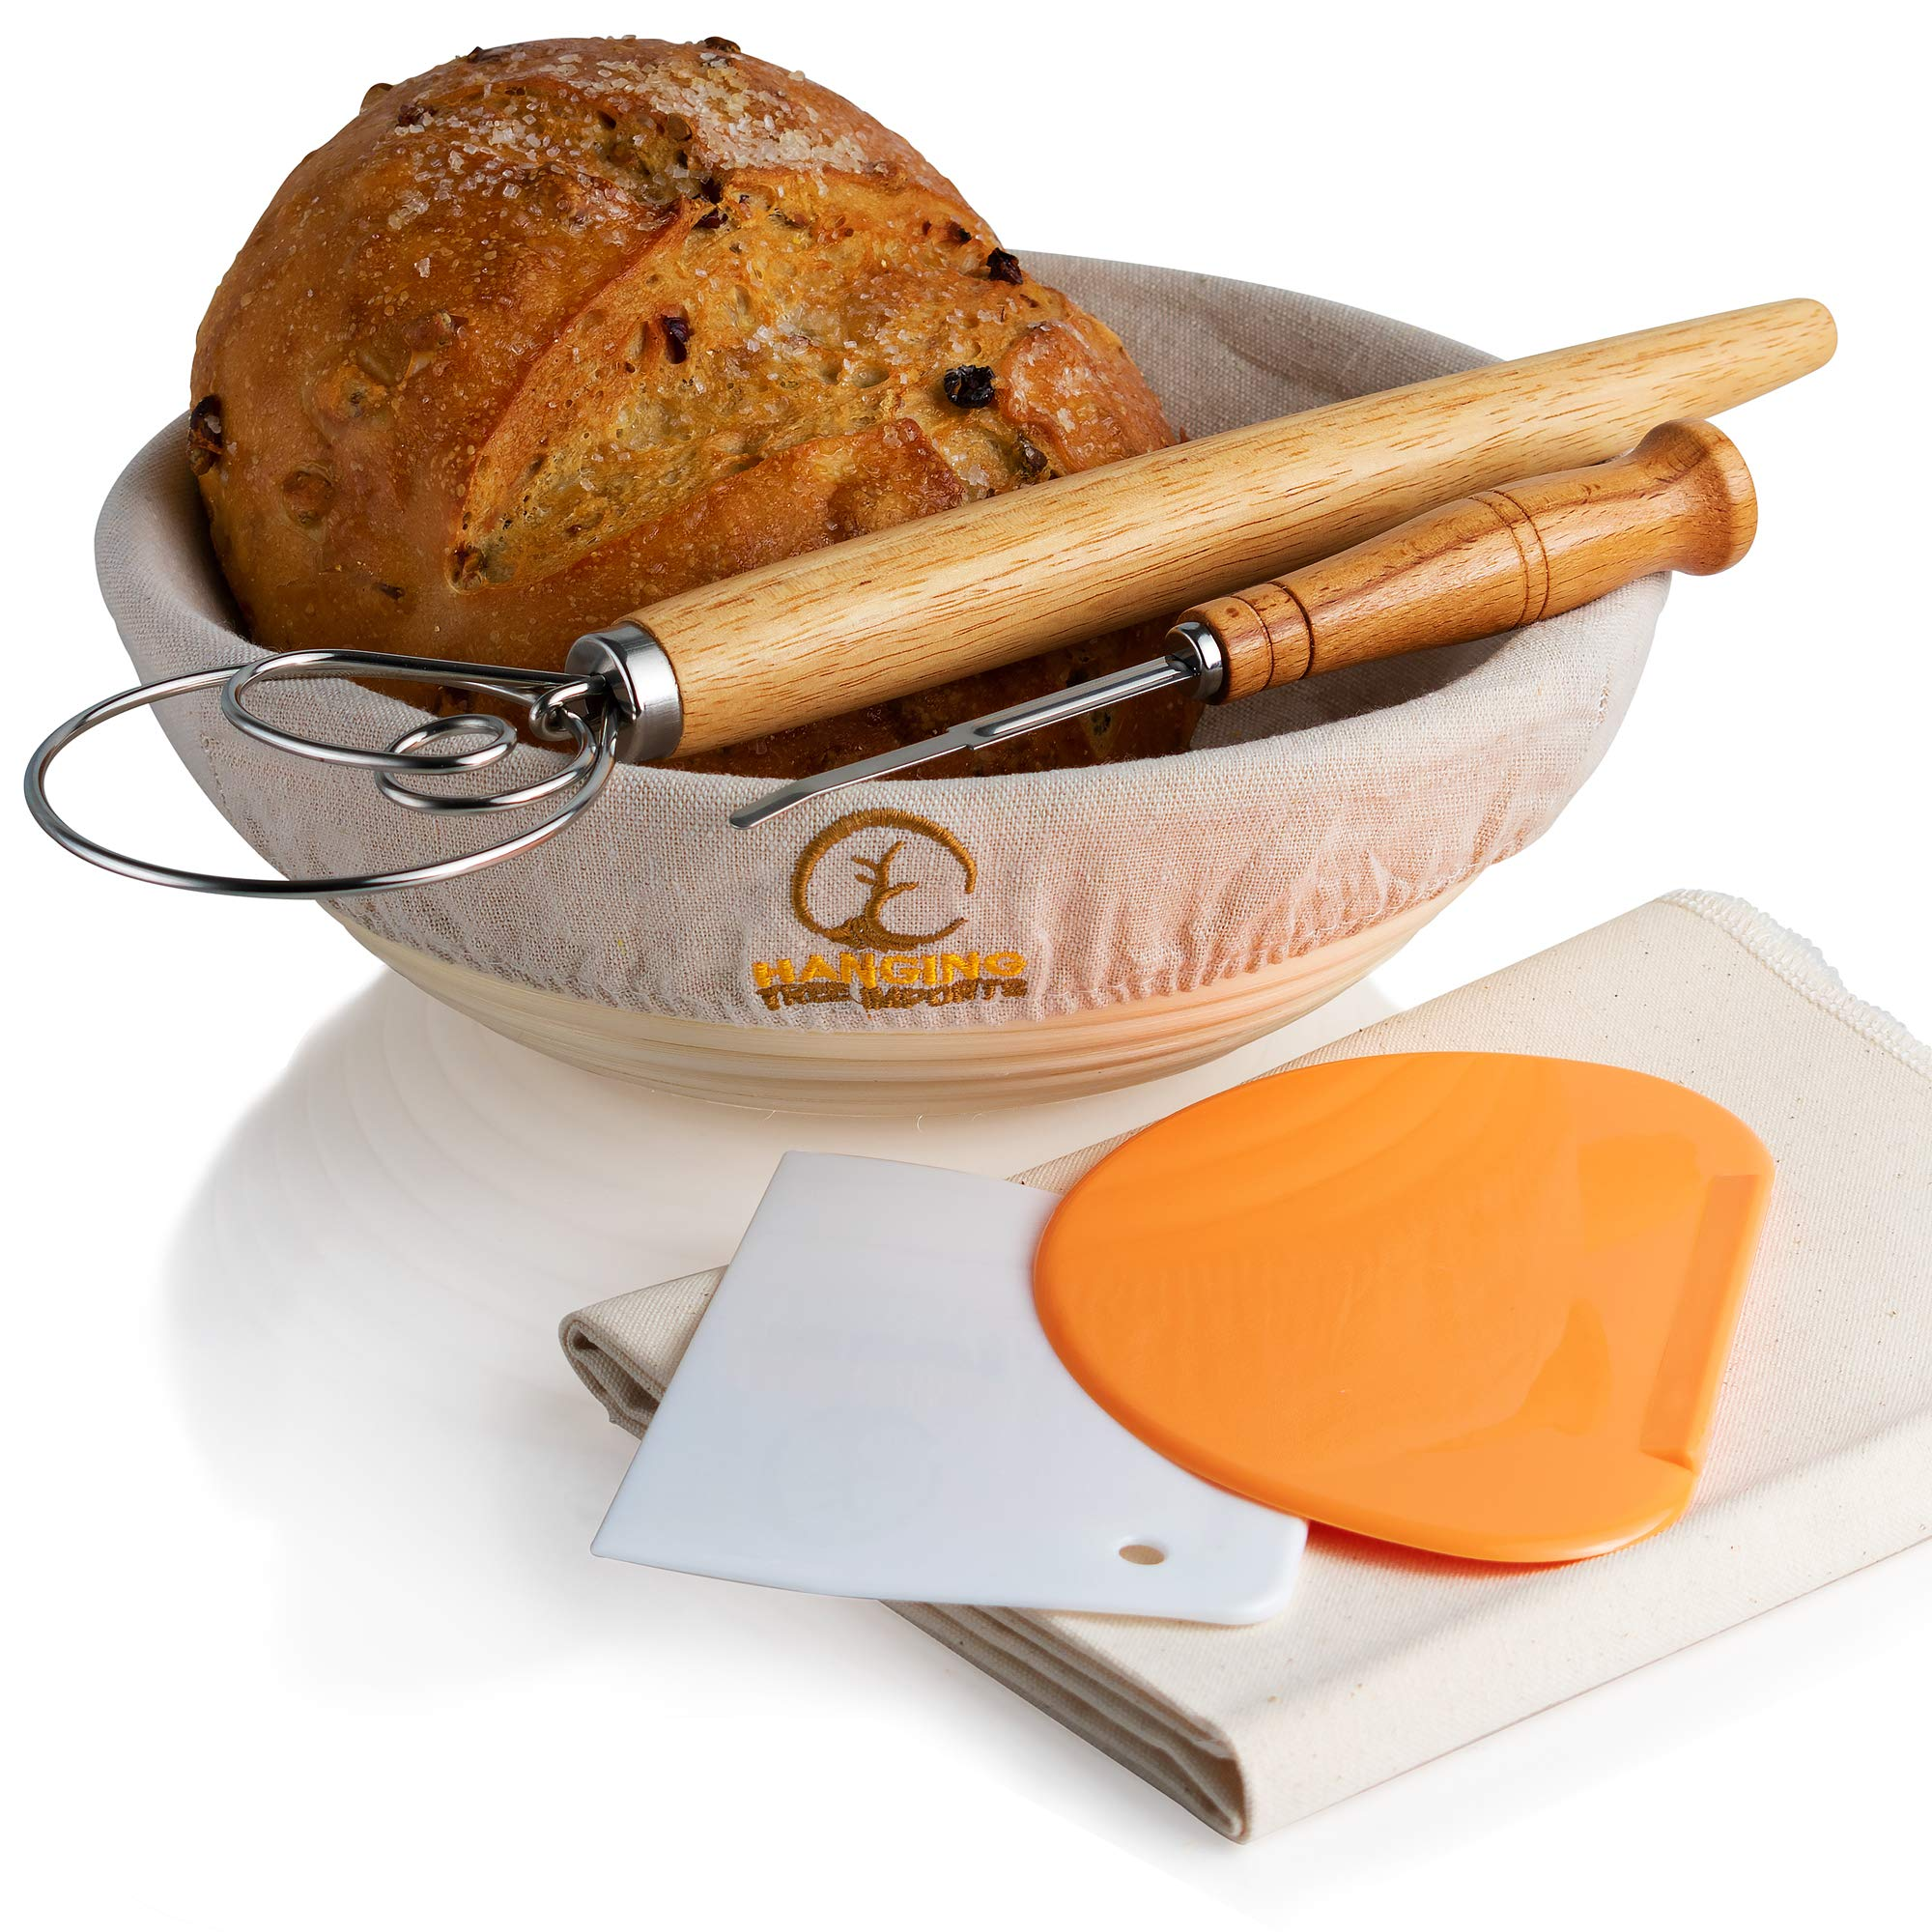 10 Inch Banneton Bread Proofing Basket Set - Includes Bread Lame, Linen Baking Couche, Dough Whisk, 2 x Dough Scrapers, Basket Liner - Brotform Rattan Basket for Bread Baking by Hanging Tree Imports